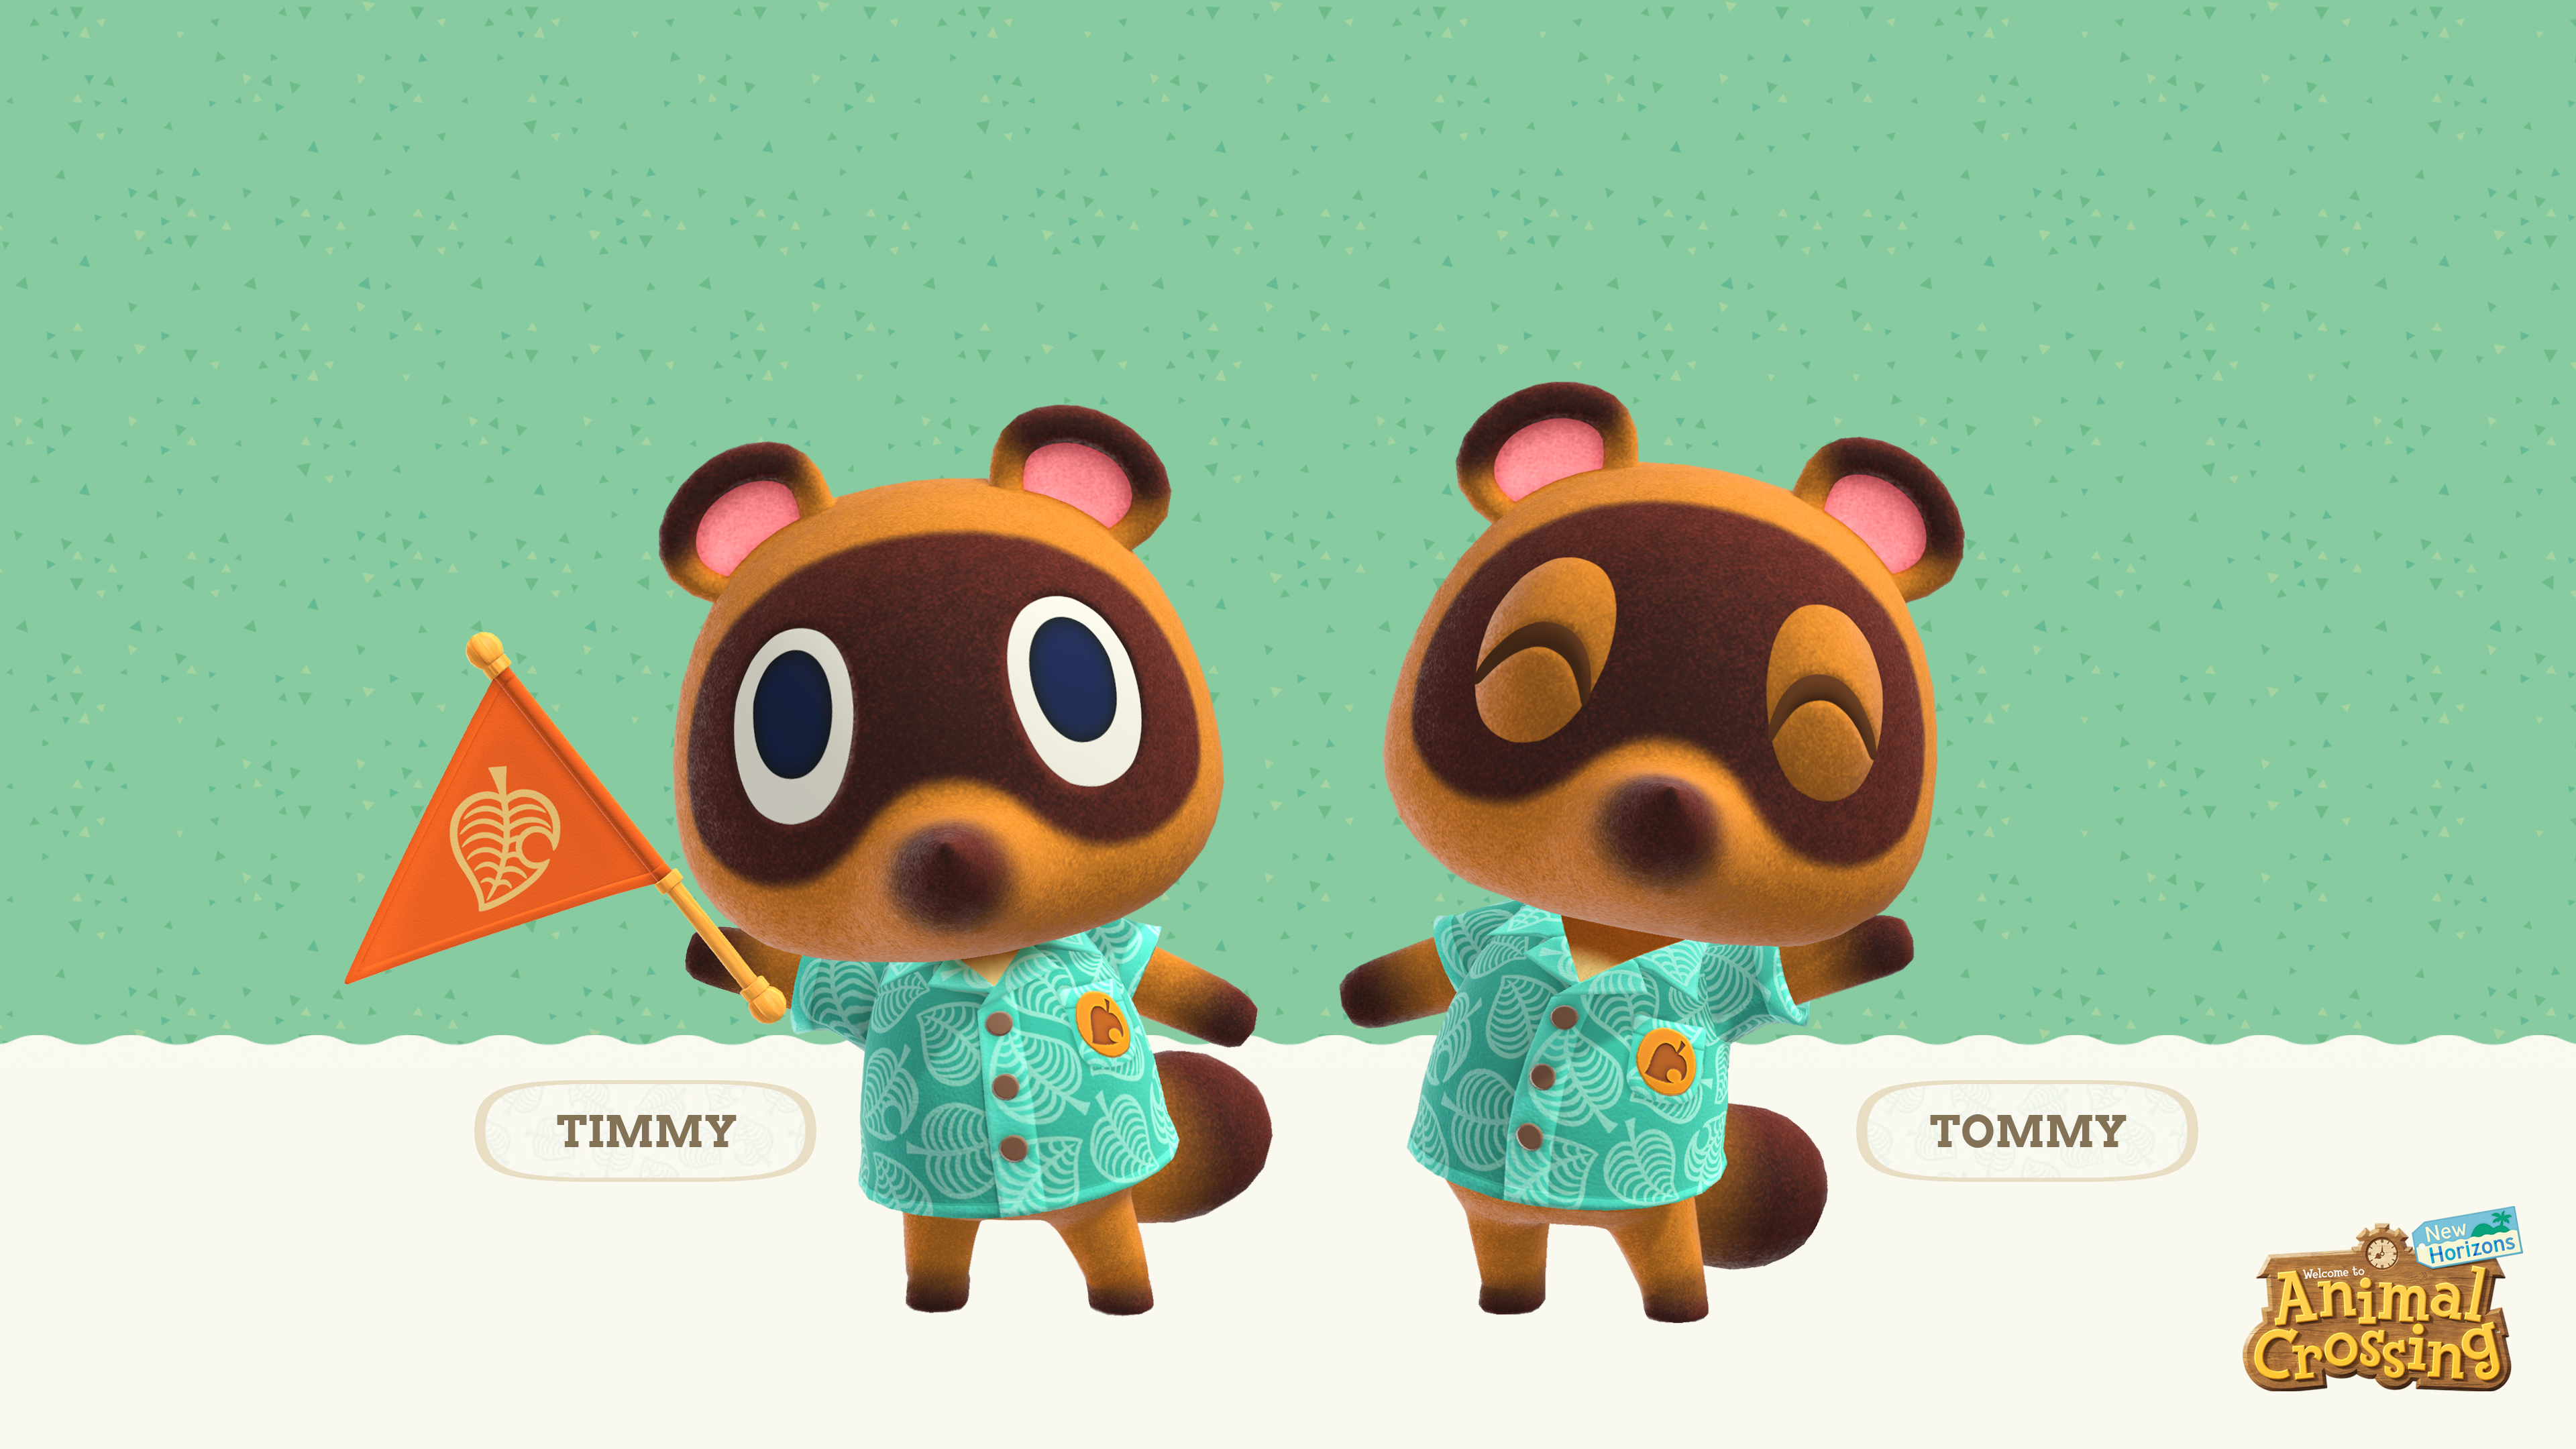 ac new horizons characters timmy tommy 3840x2160 1